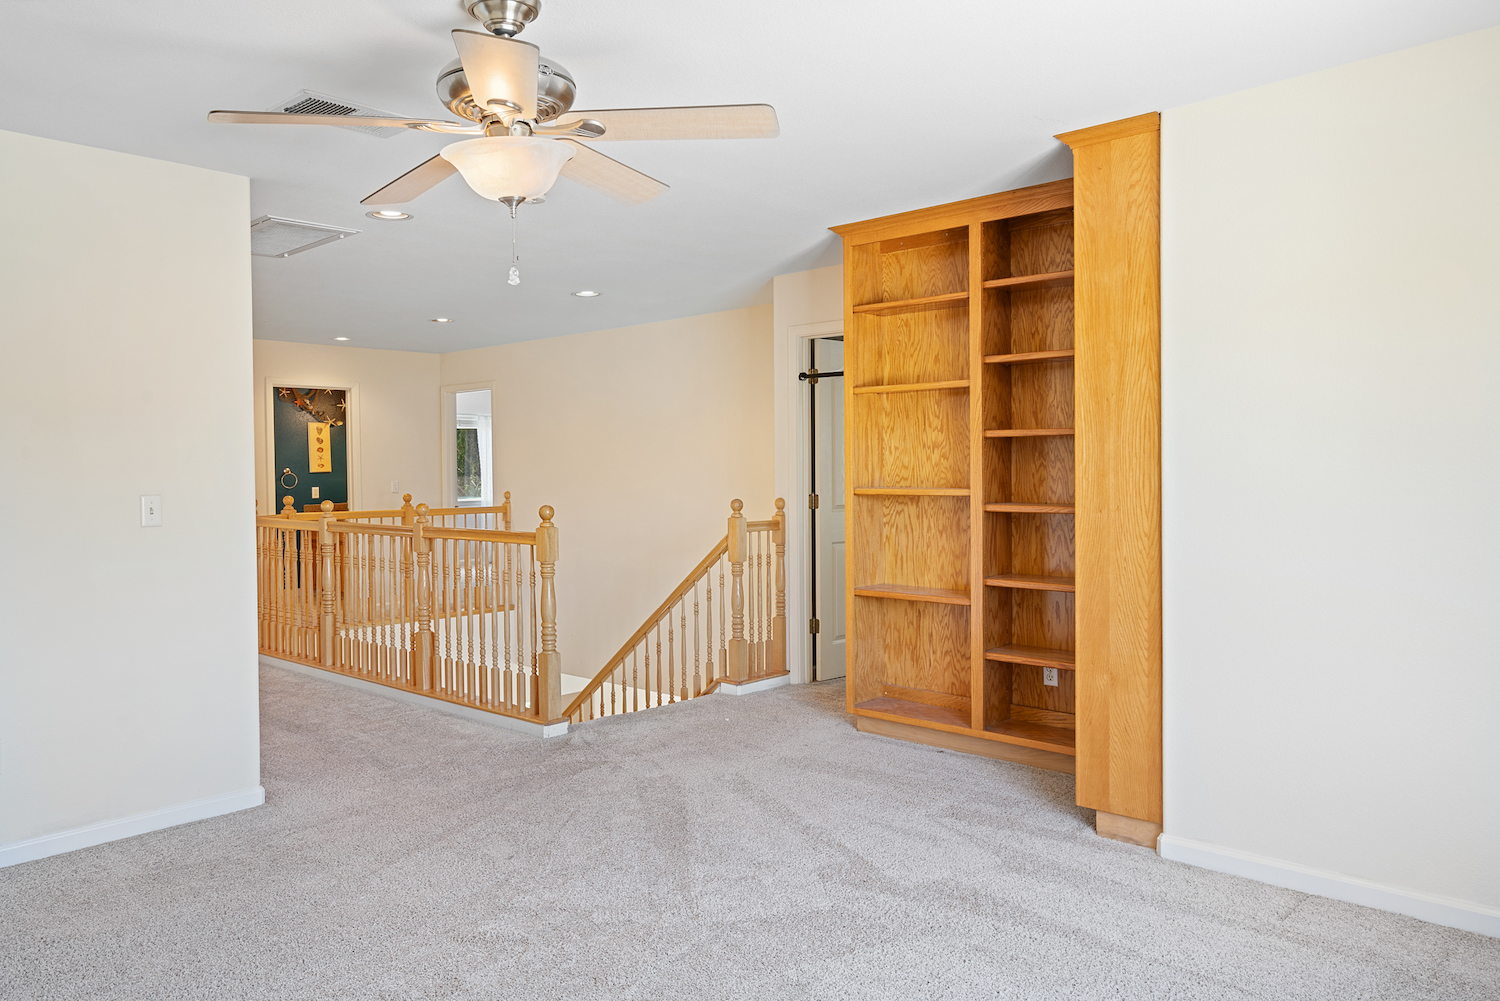 2241 glenview dr - upstairs open space